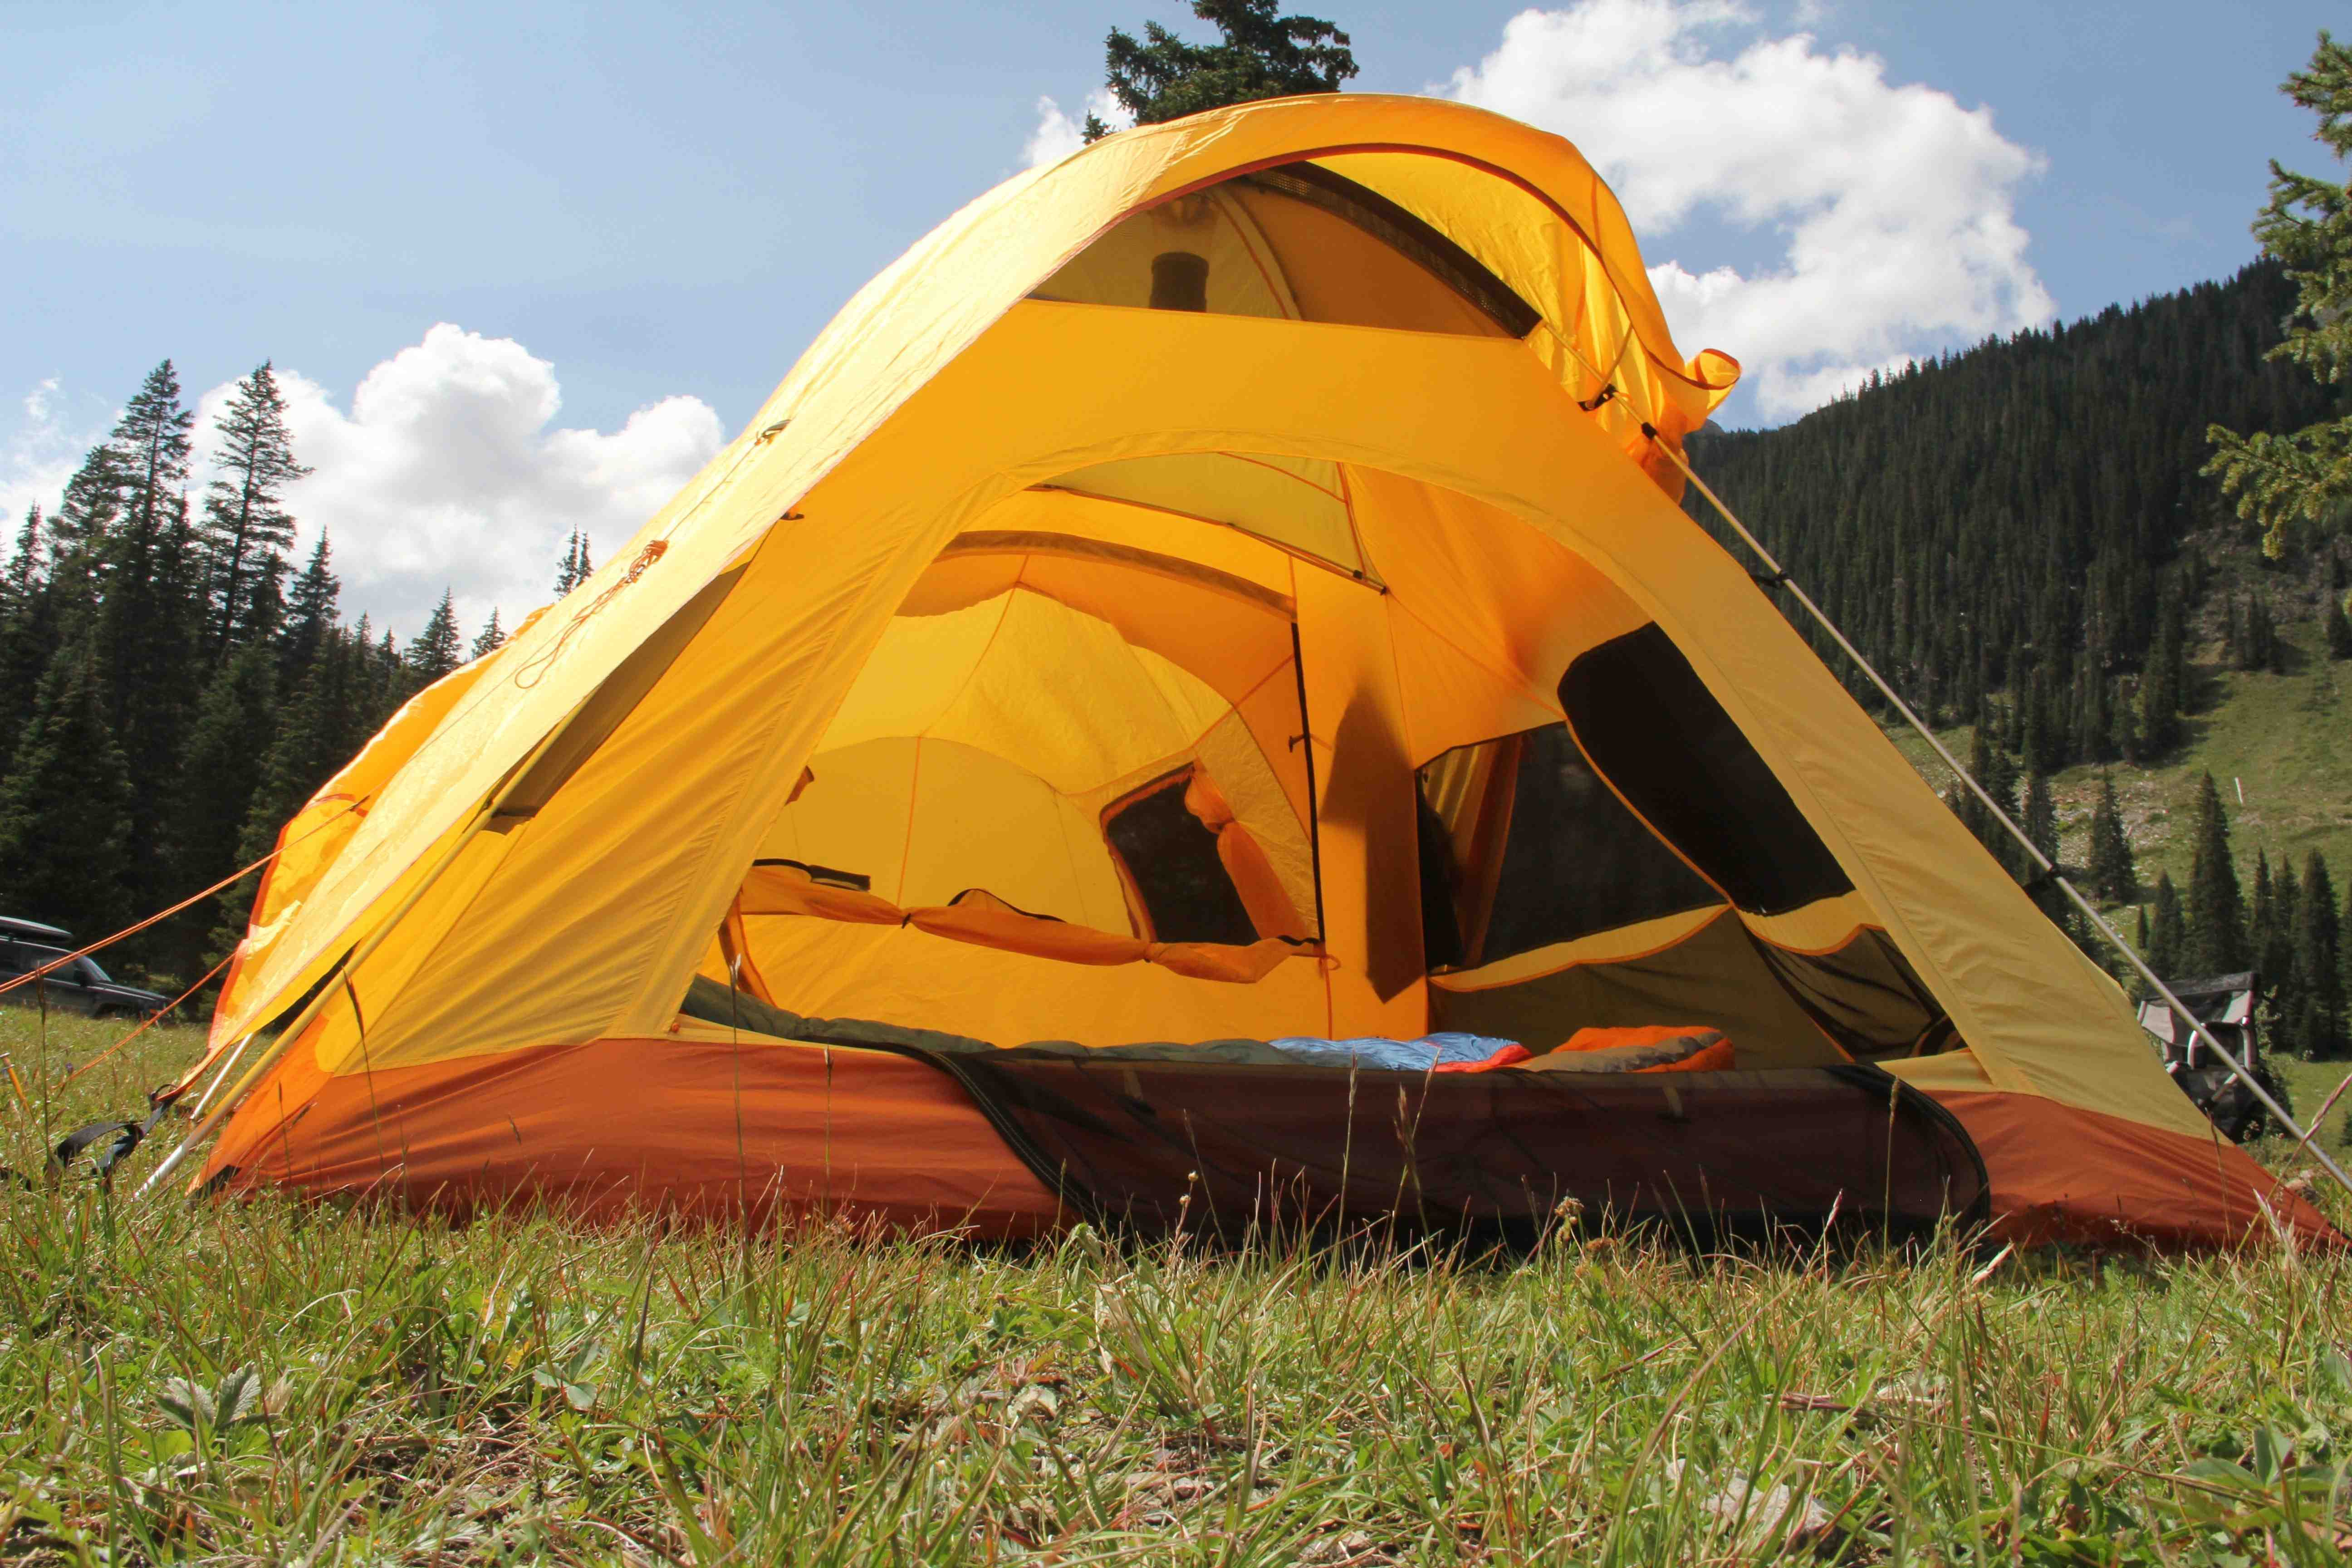 Shelter from the Storm: How to Select a Ground Tent